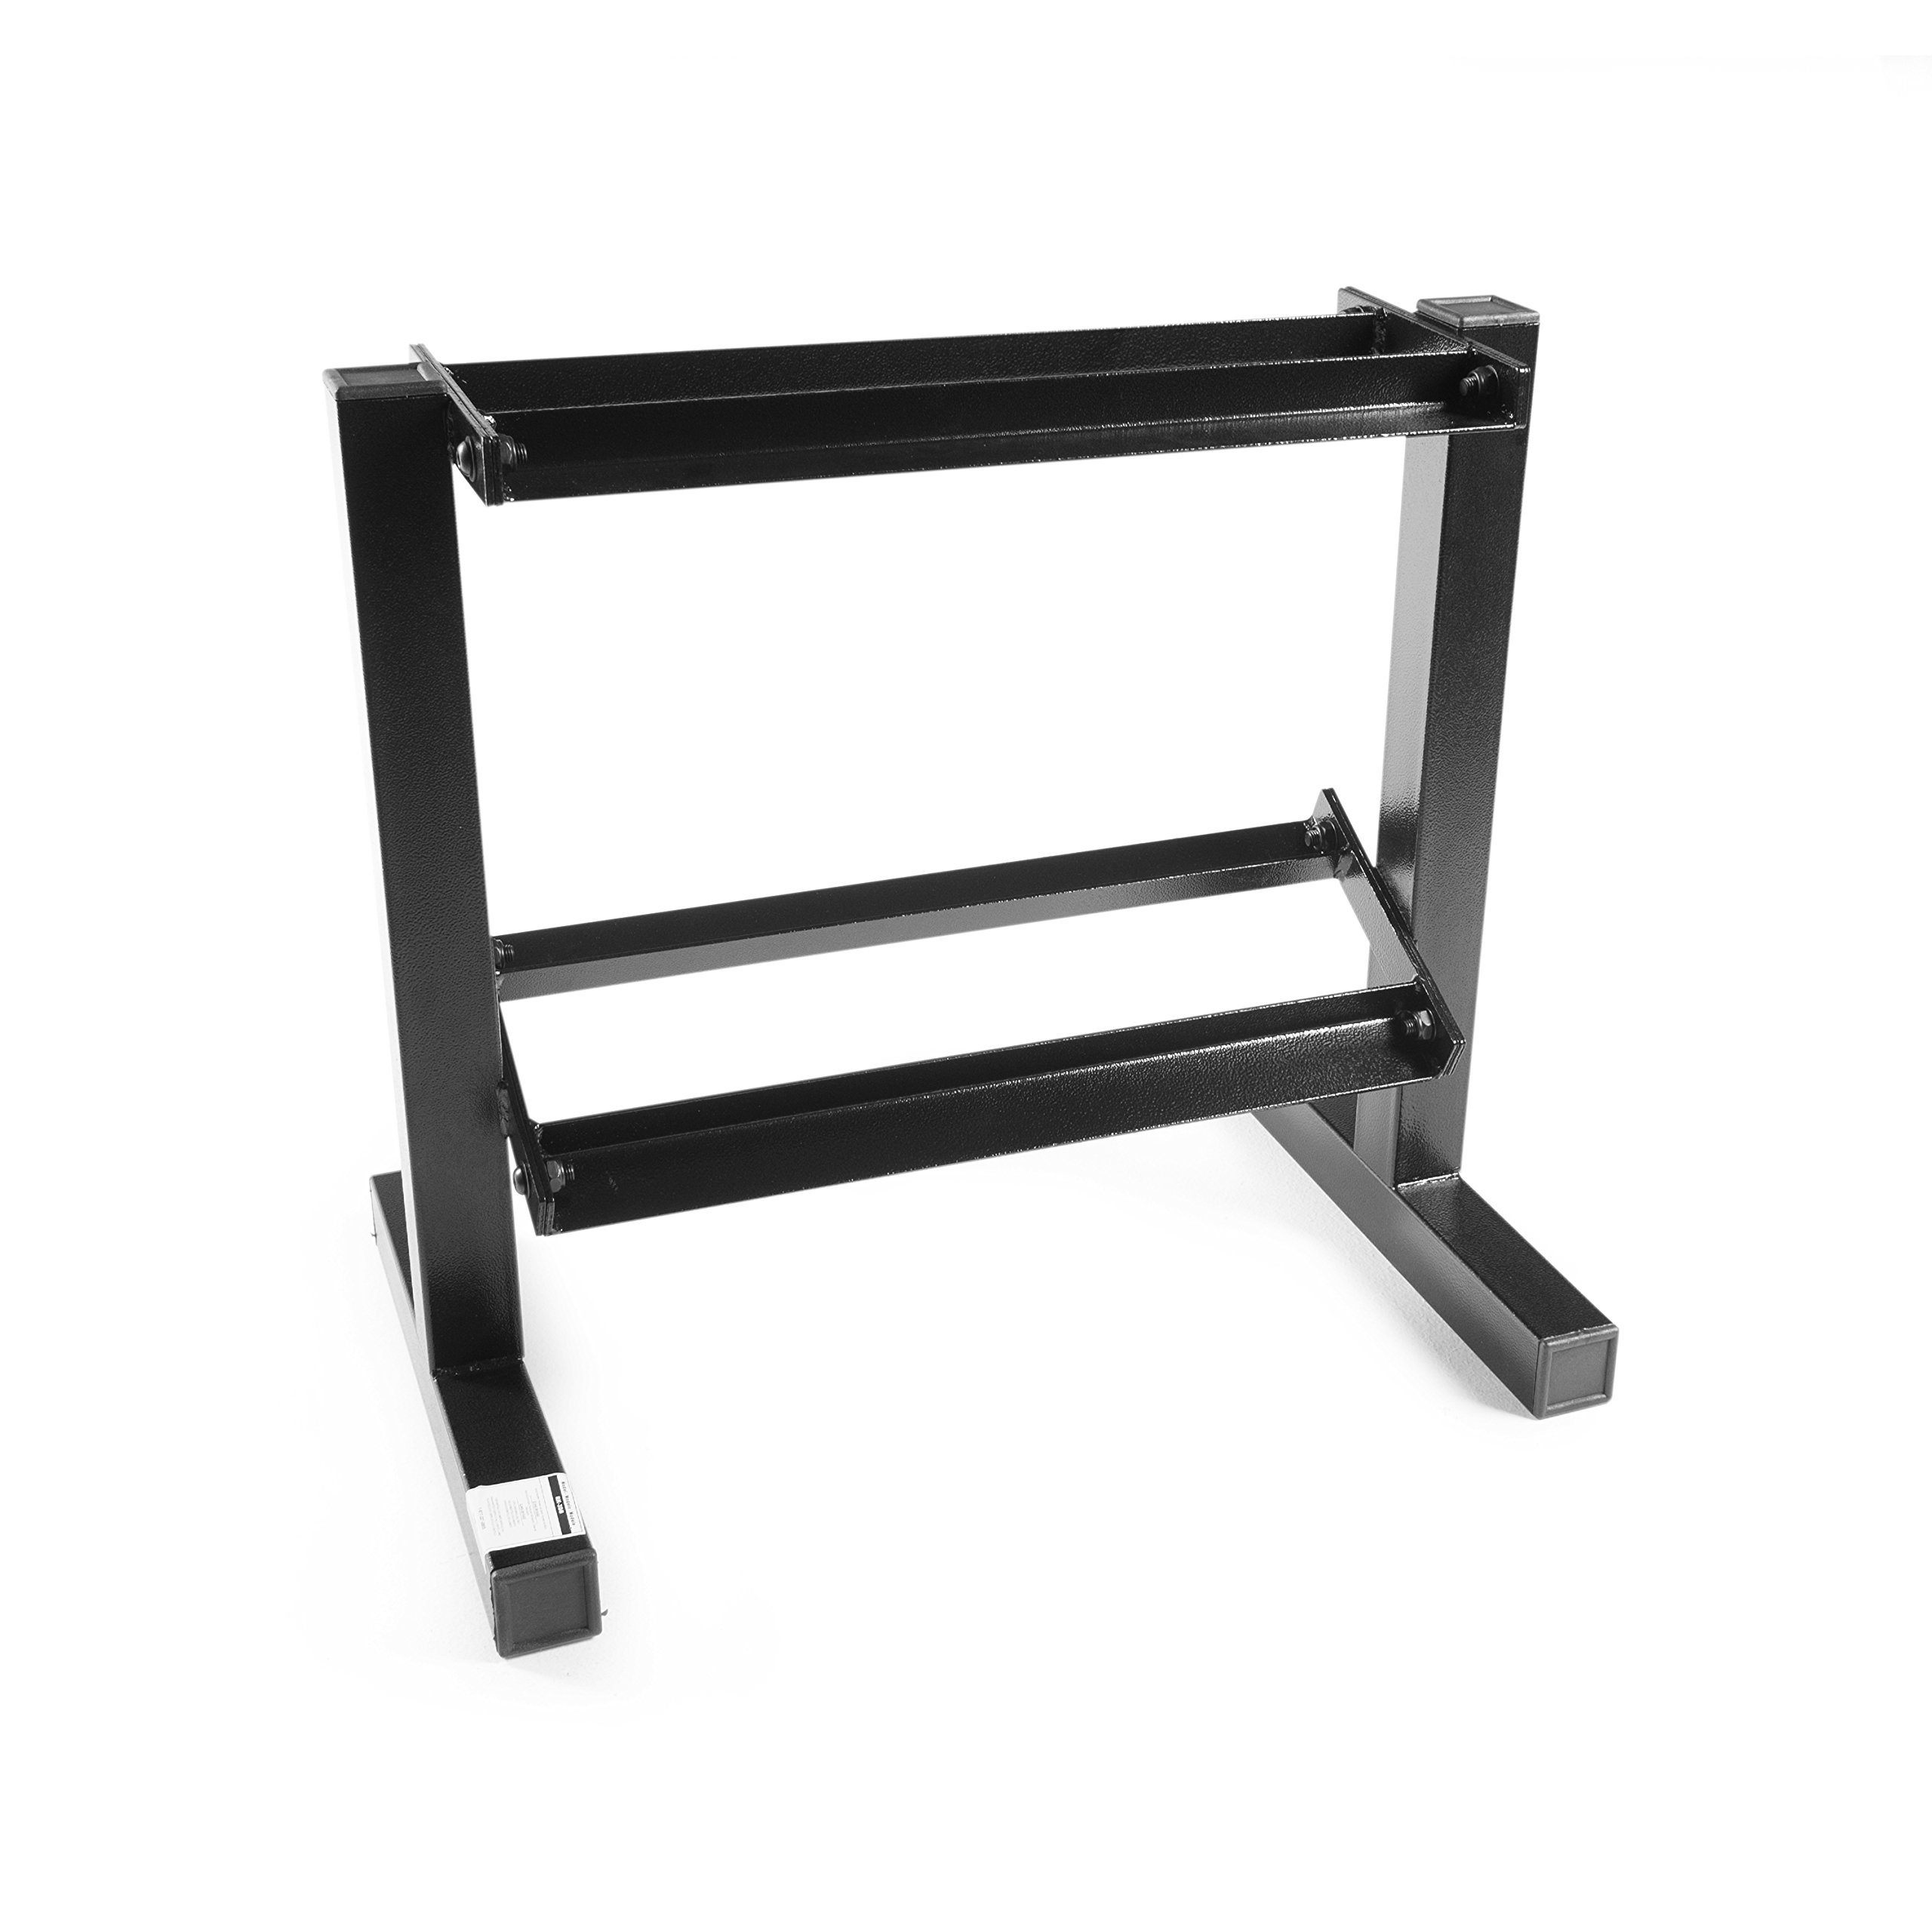 CAP Barbell Two Tier Dumbbell Rack, 20'', Black by CAP Barbell